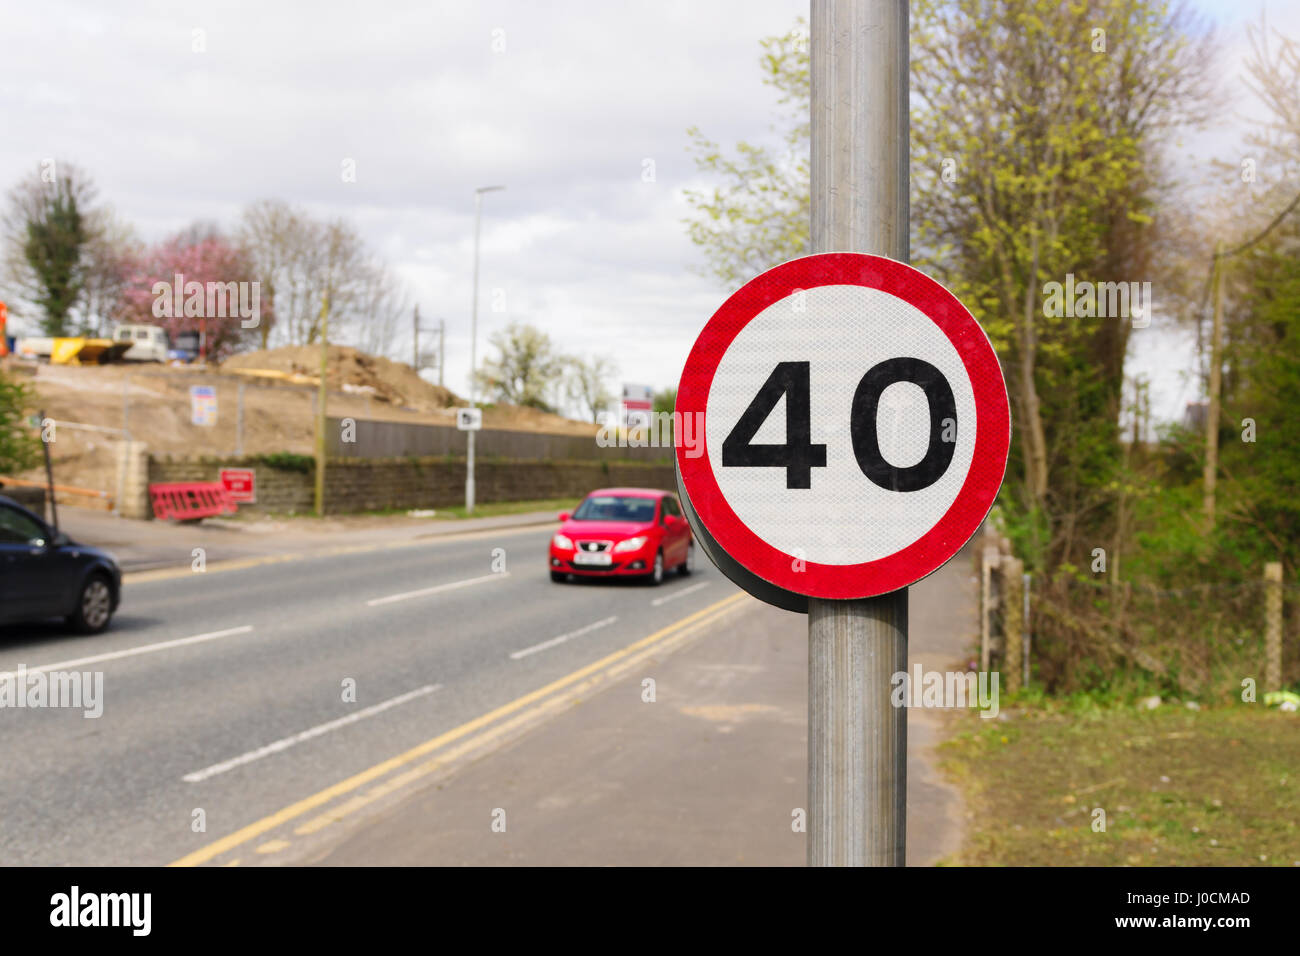 Urban 40 miles per hour speed limit sign used in the United Kingdom with defocussed traffic in the background - Stock Image